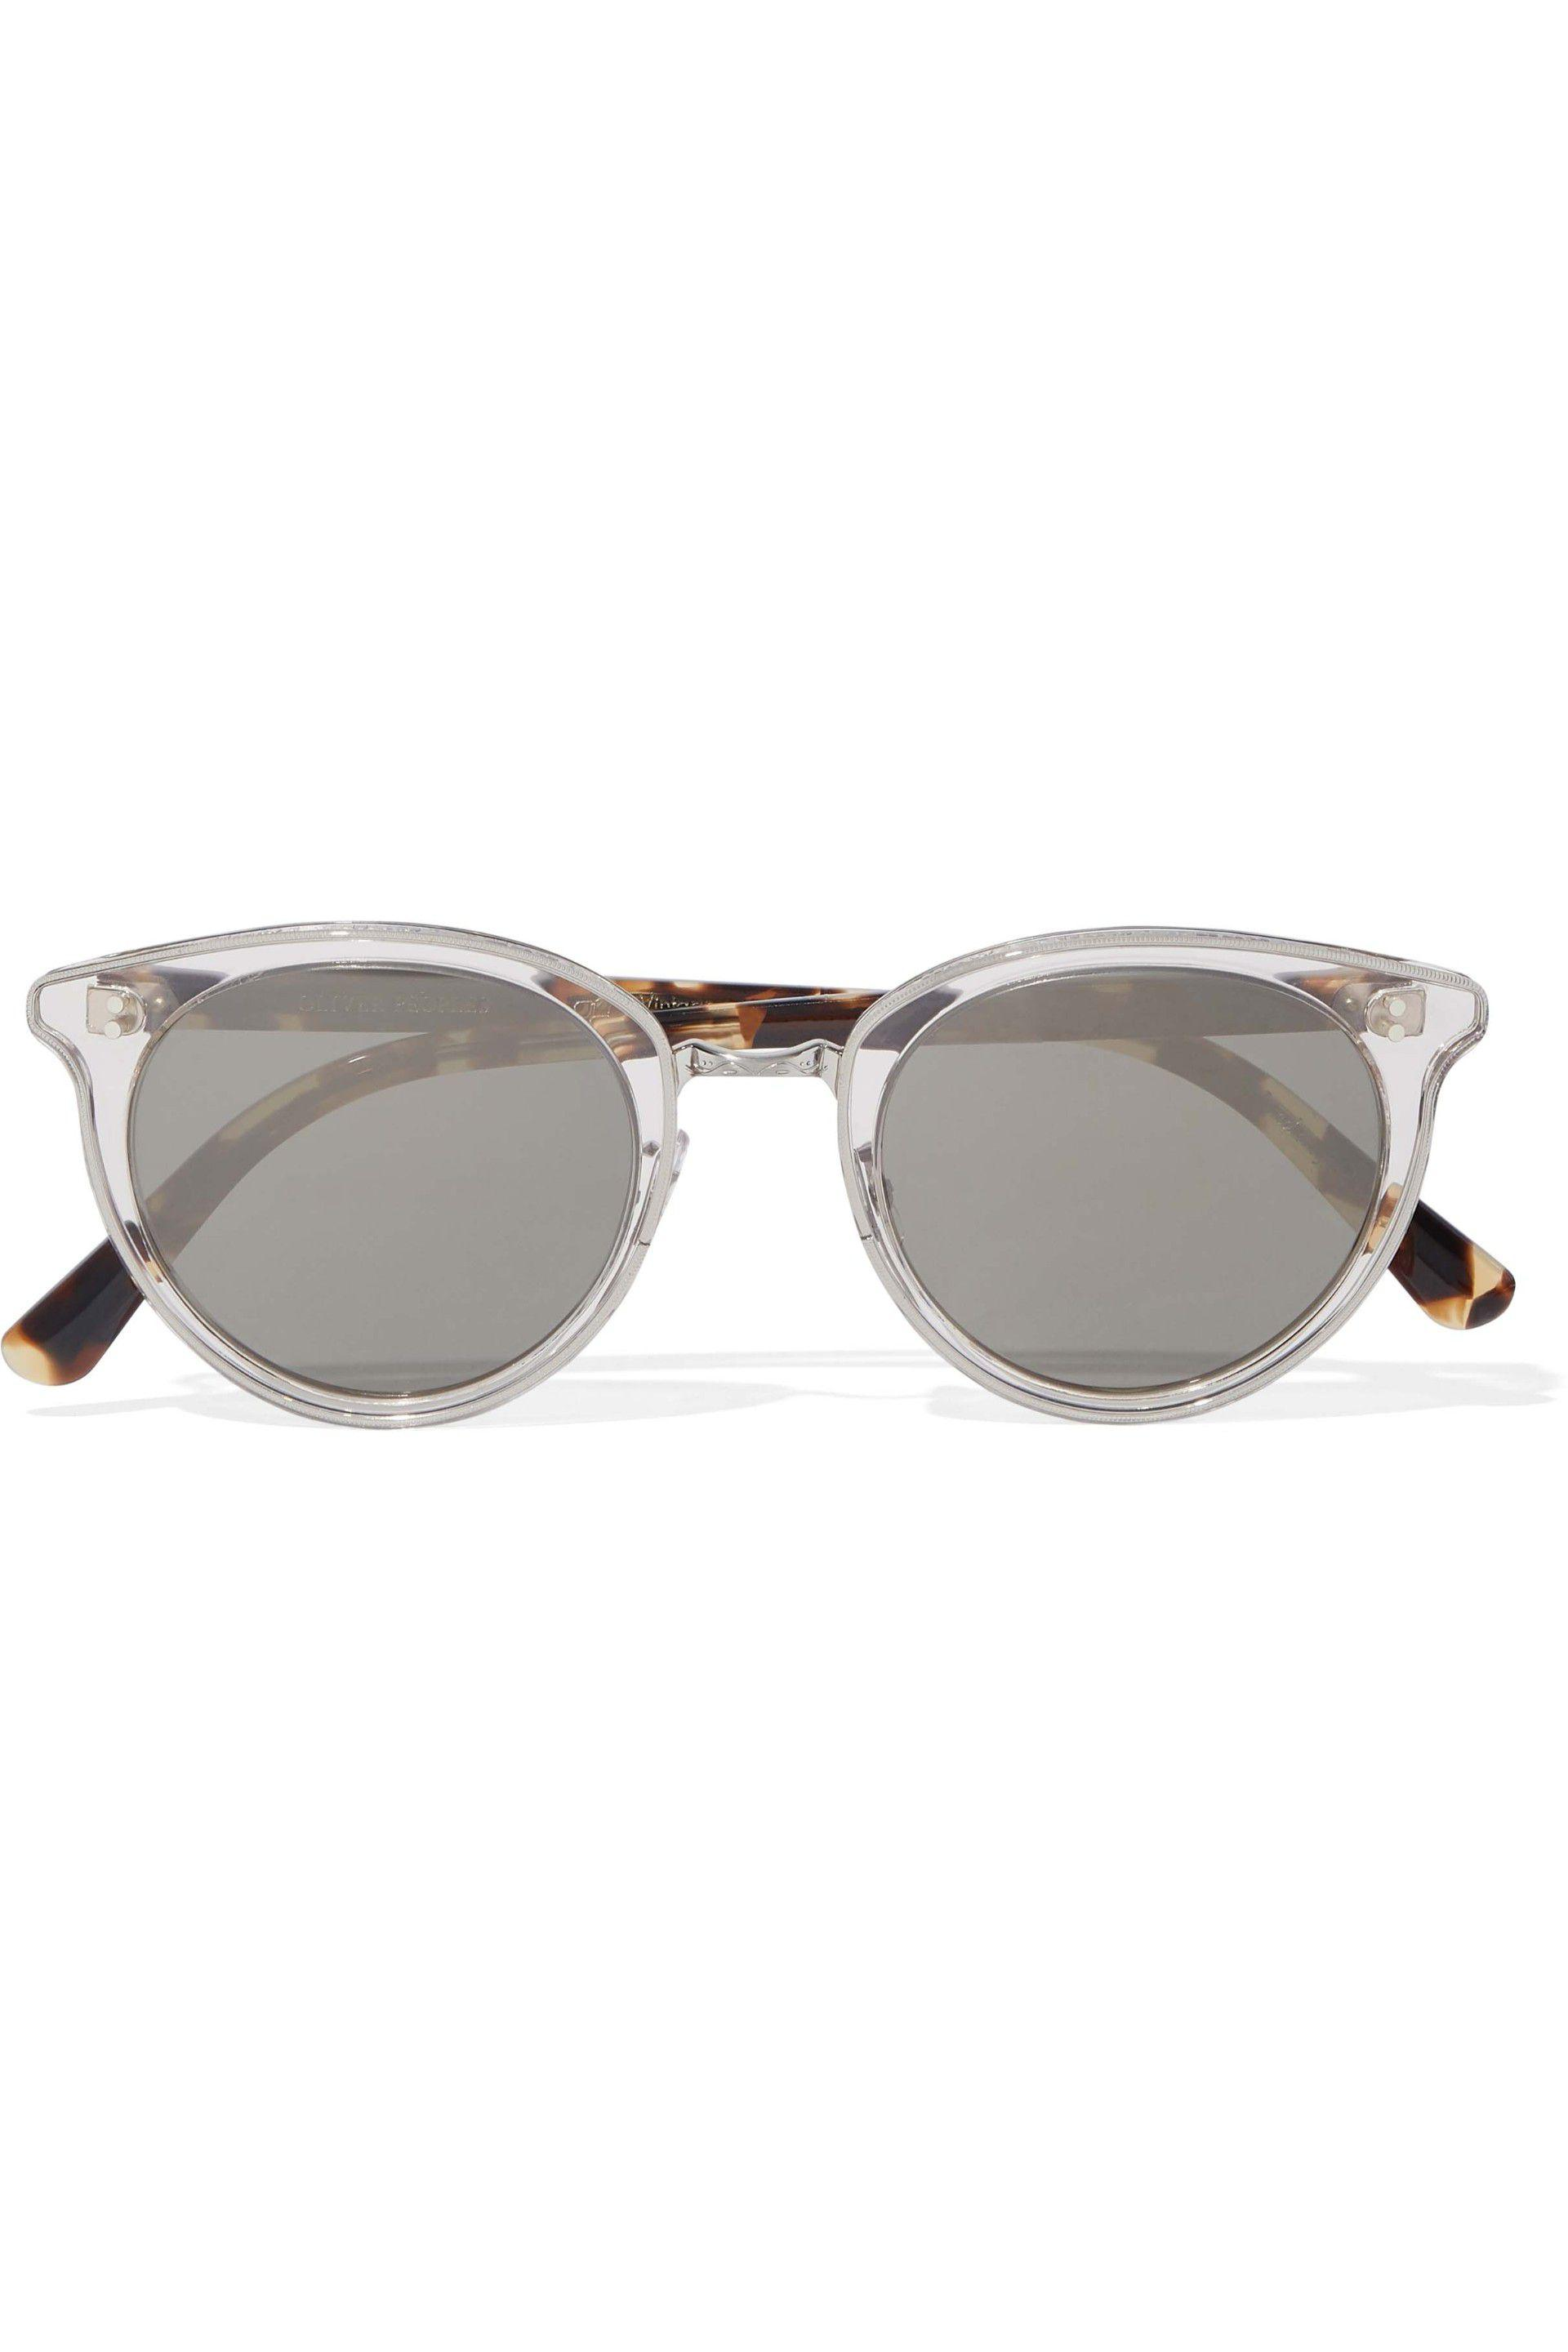 86de422b0ef Lyst - Oliver Peoples Round-frame Printed Acetate Mirrored ...